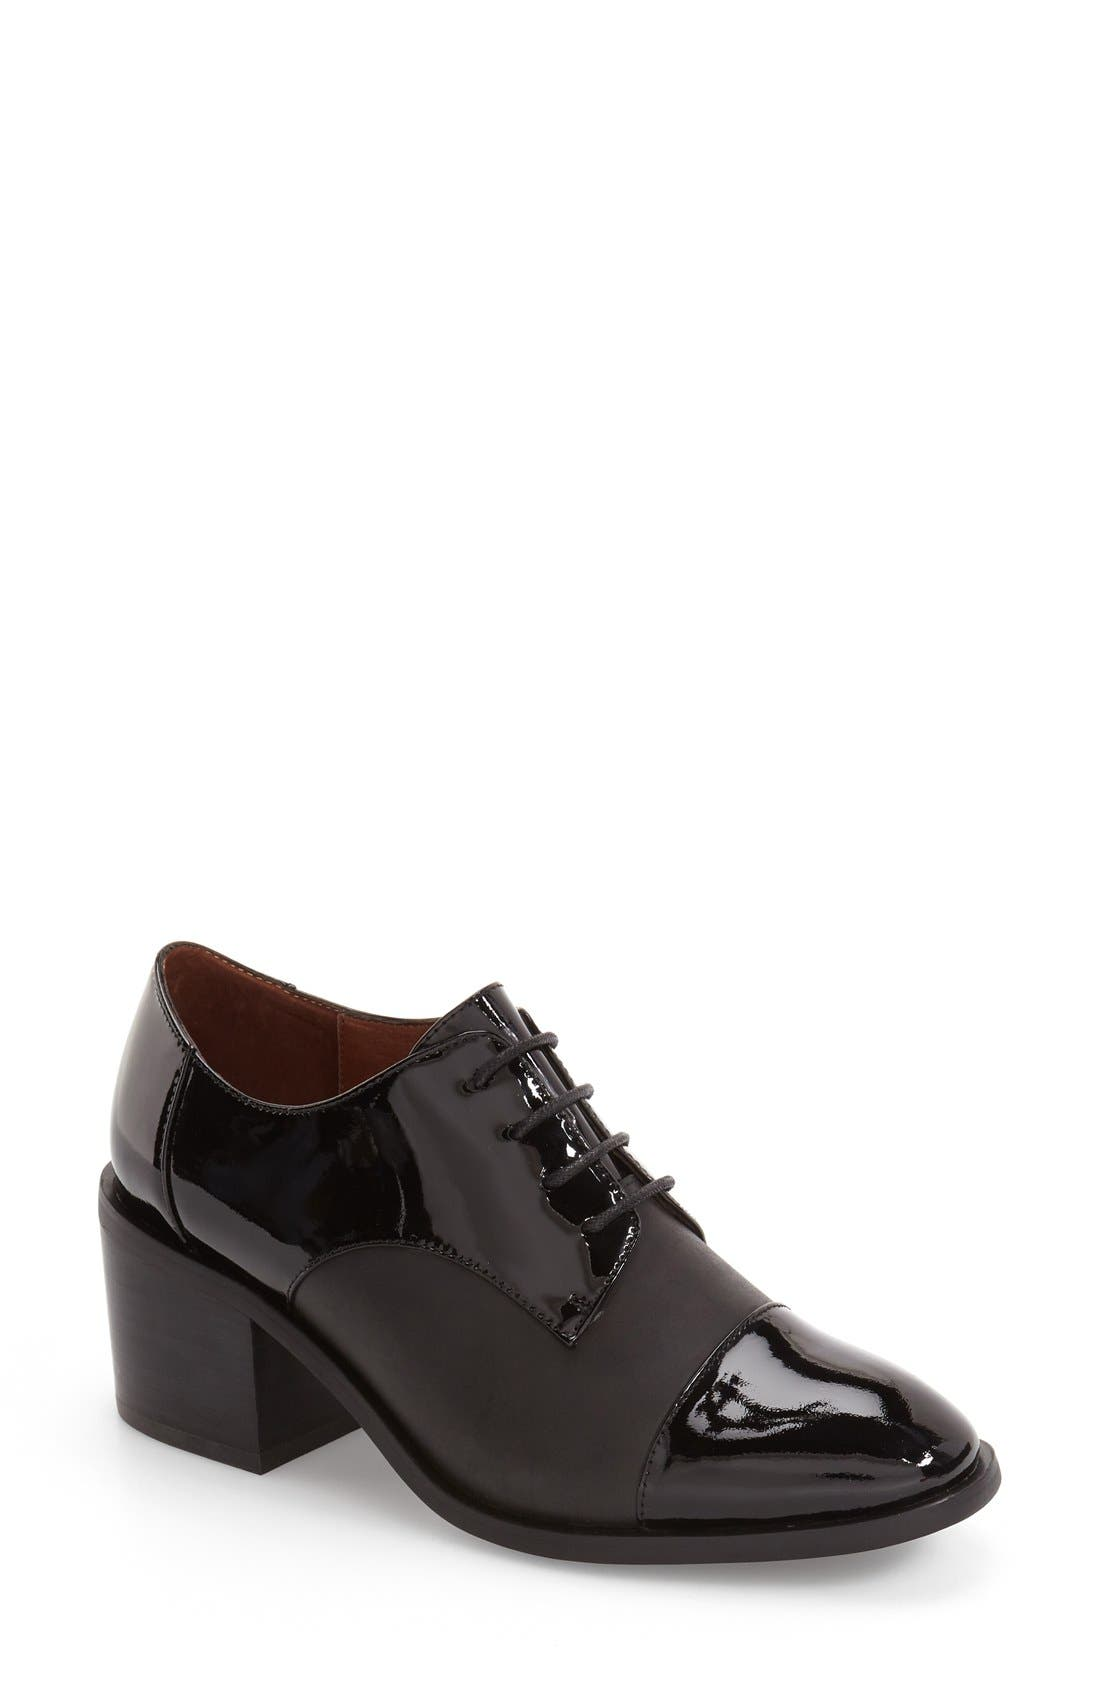 Alternate Image 1 Selected - Jeffrey Campbell 'Egan' Cap Toe Oxford (Women)